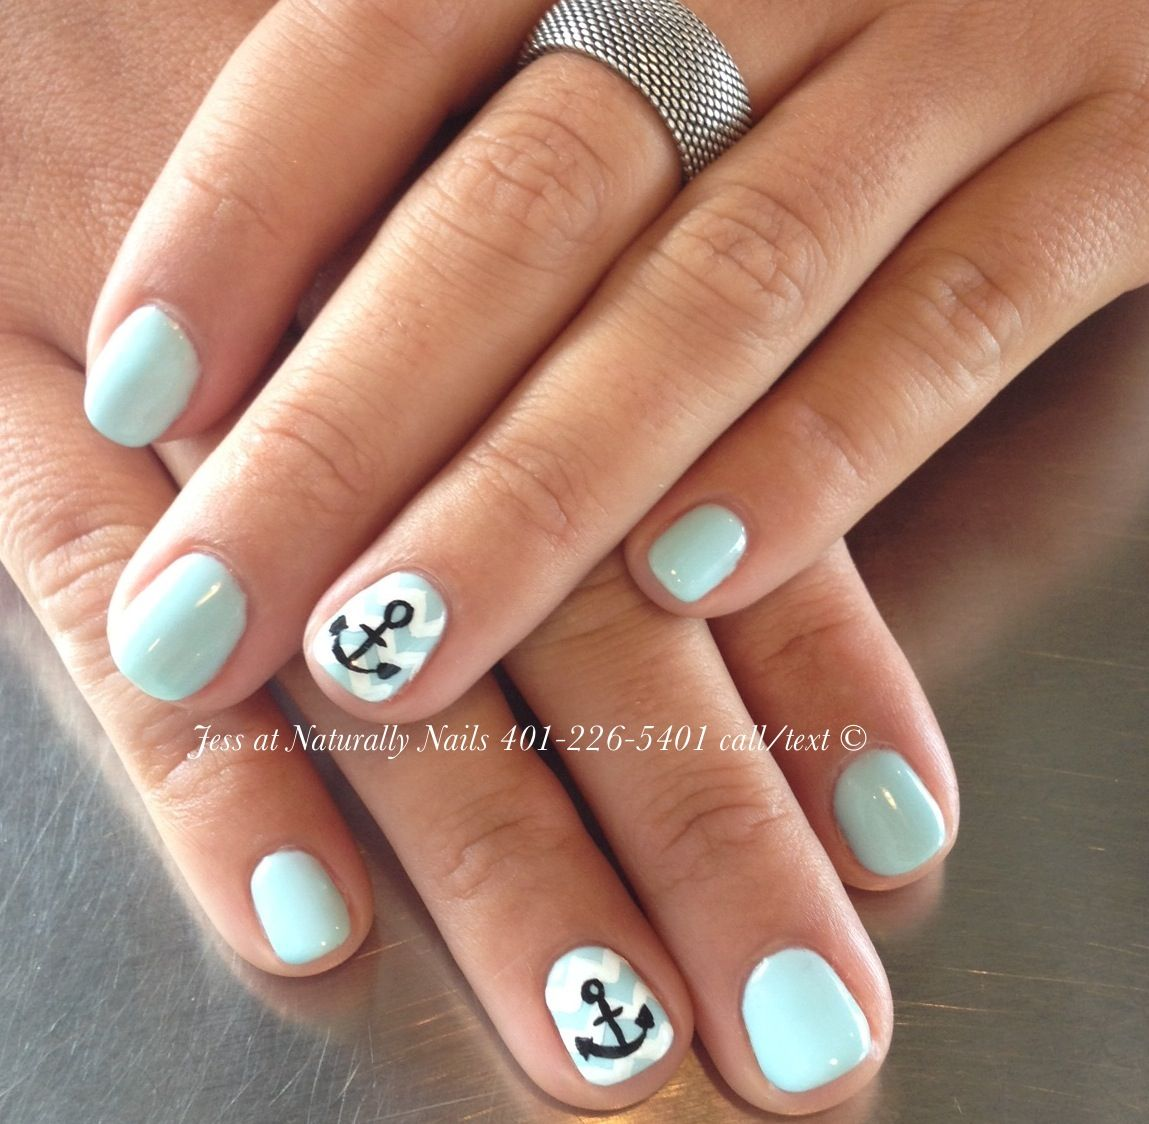 Gel manicure by Jess at naturally nails. www.naturallynailseg.com ...